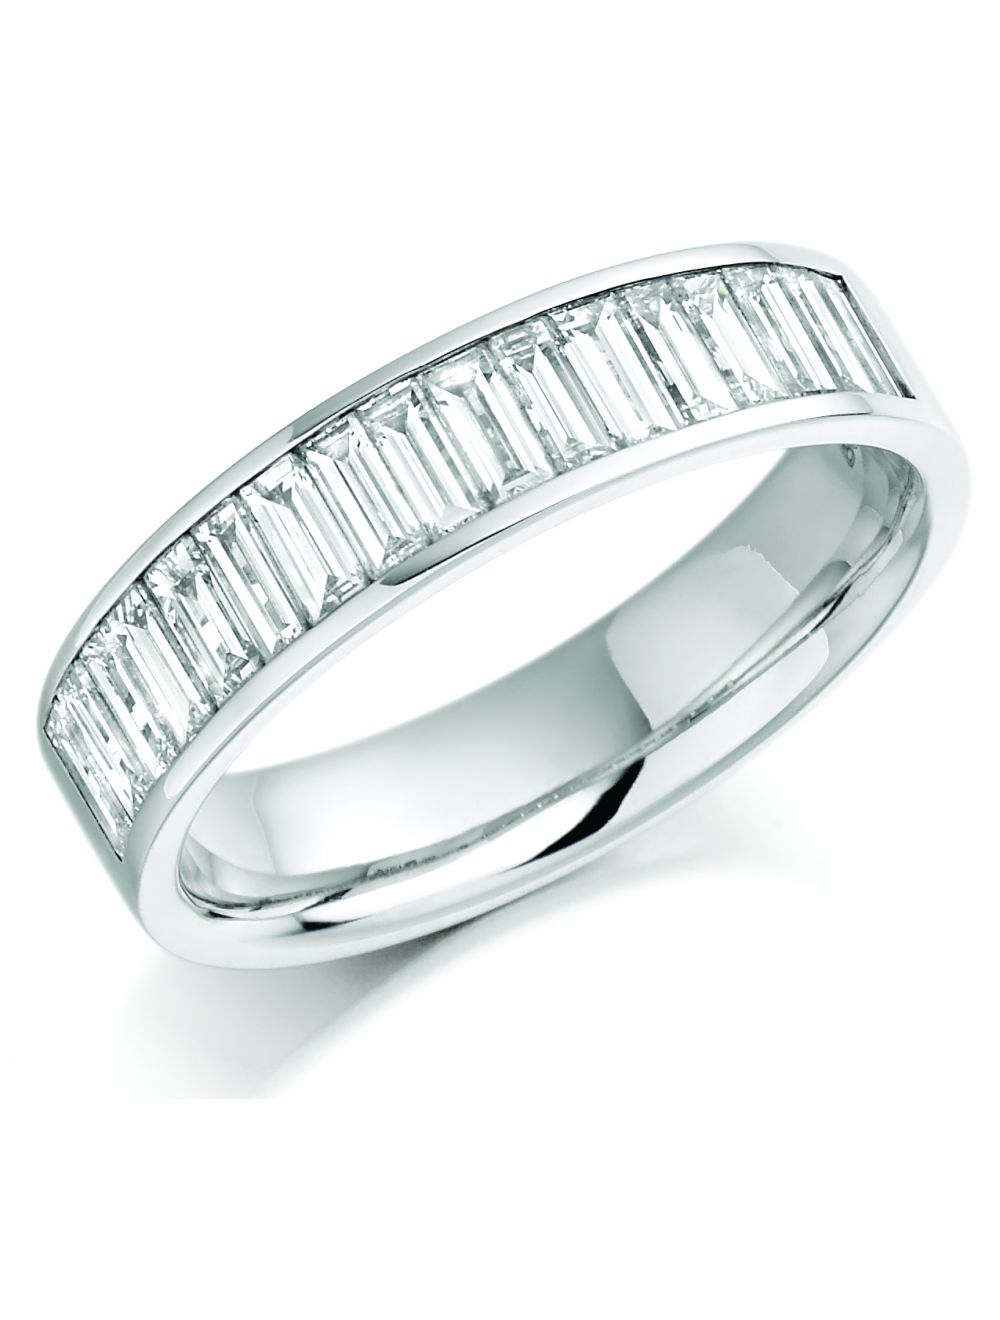 18Ct White Gold Channel Set Baguette Diamond Eternity Ring Pertaining To Recent Baguette Diamond Channel Set Anniversary Bands In White Gold (View 6 of 25)